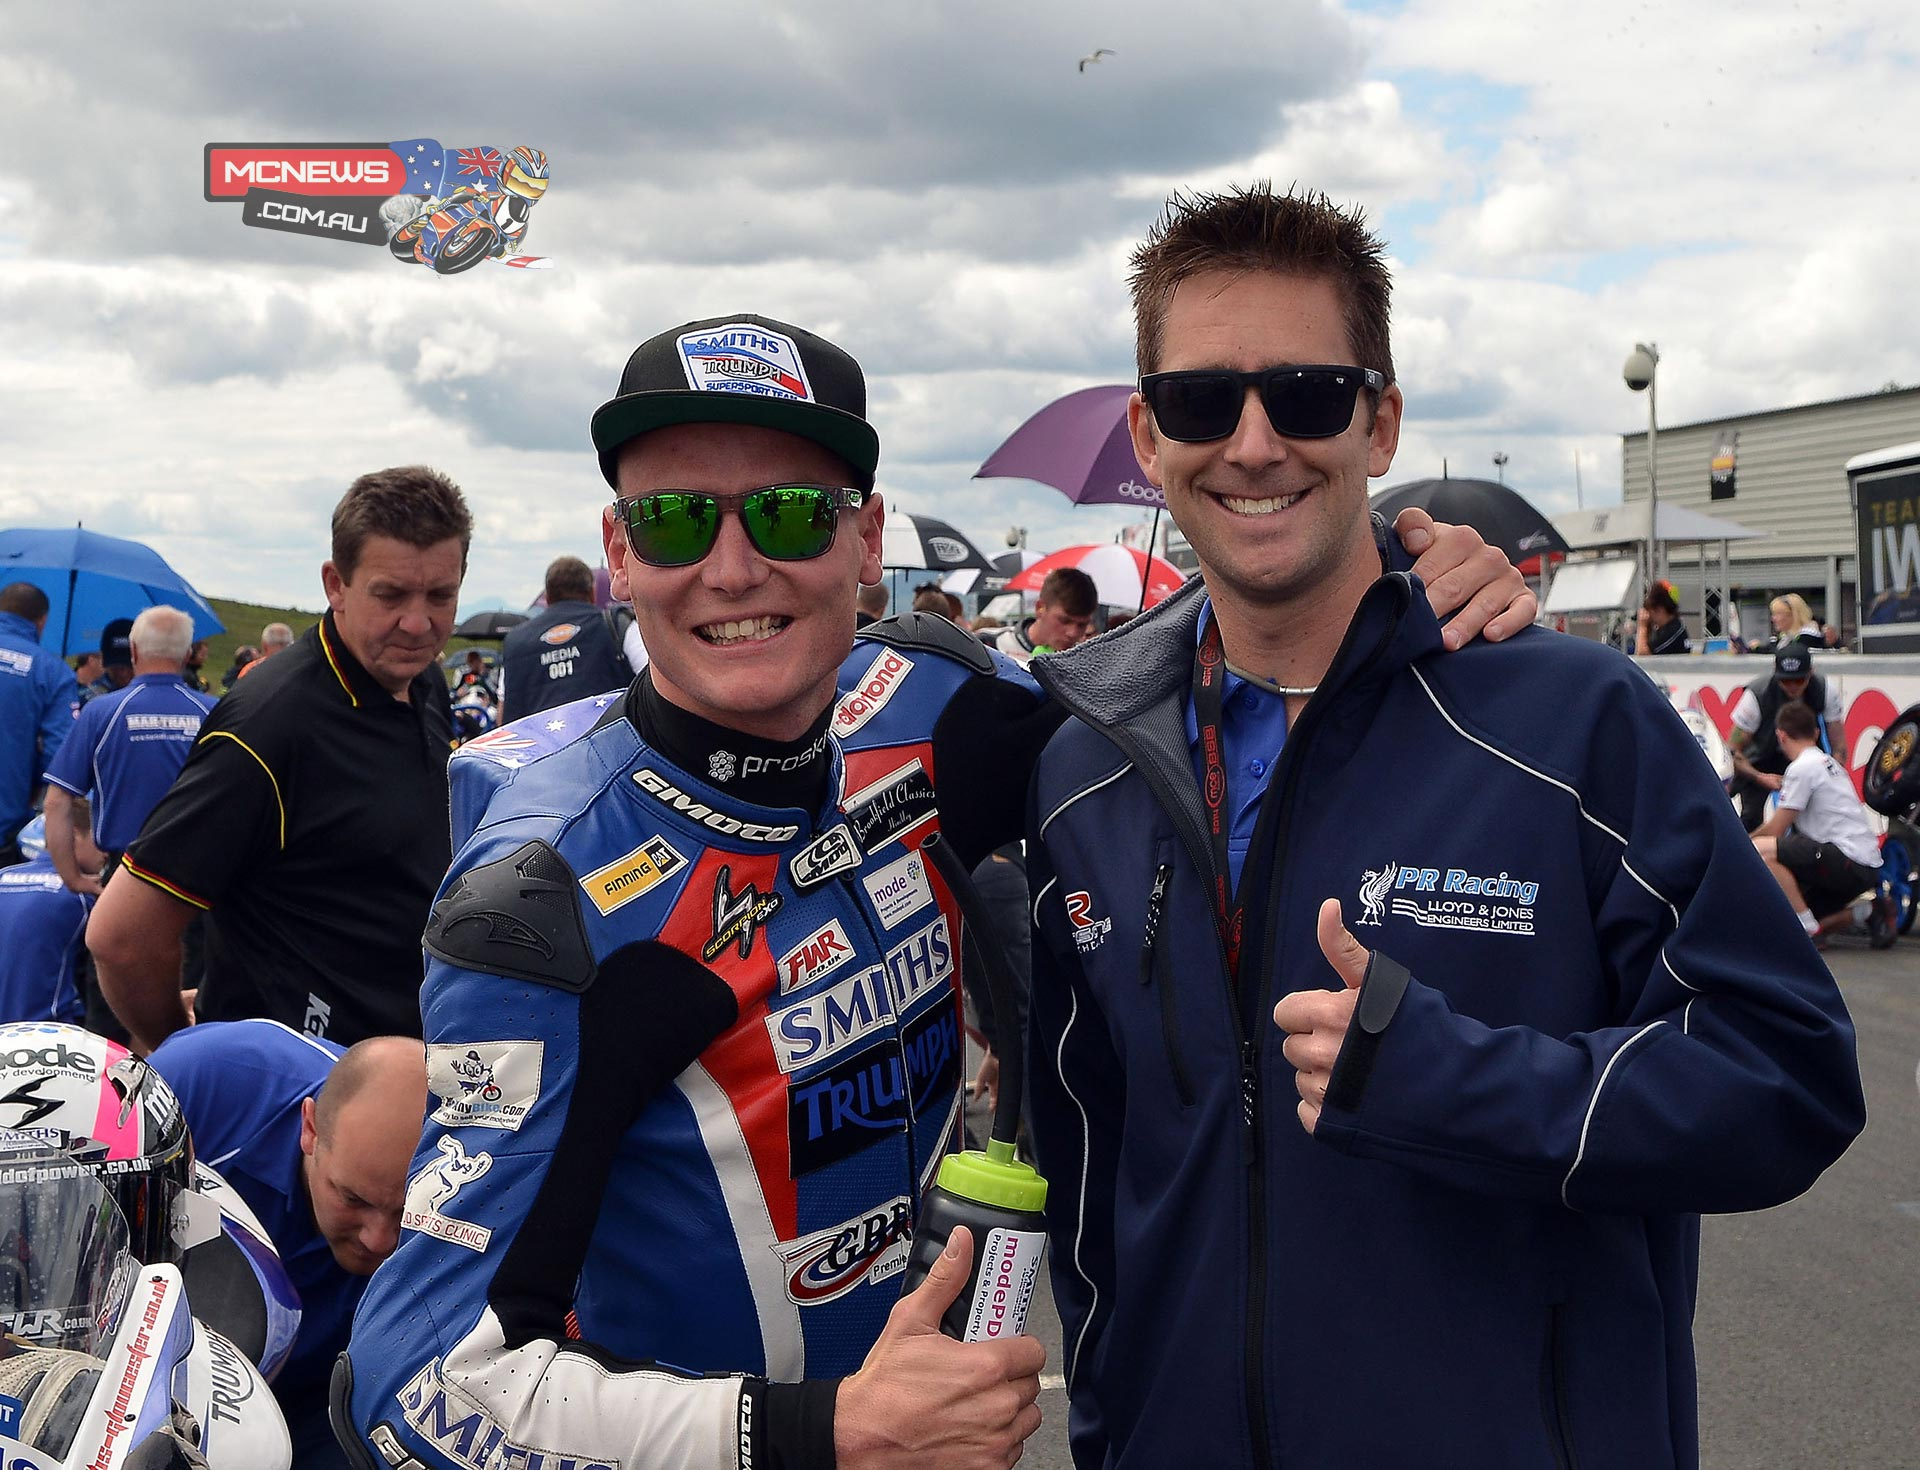 Billy McConnell with Australian compatriot David Johnson at the grid on Knockhill. Both men took podium finishes at Knockhill.